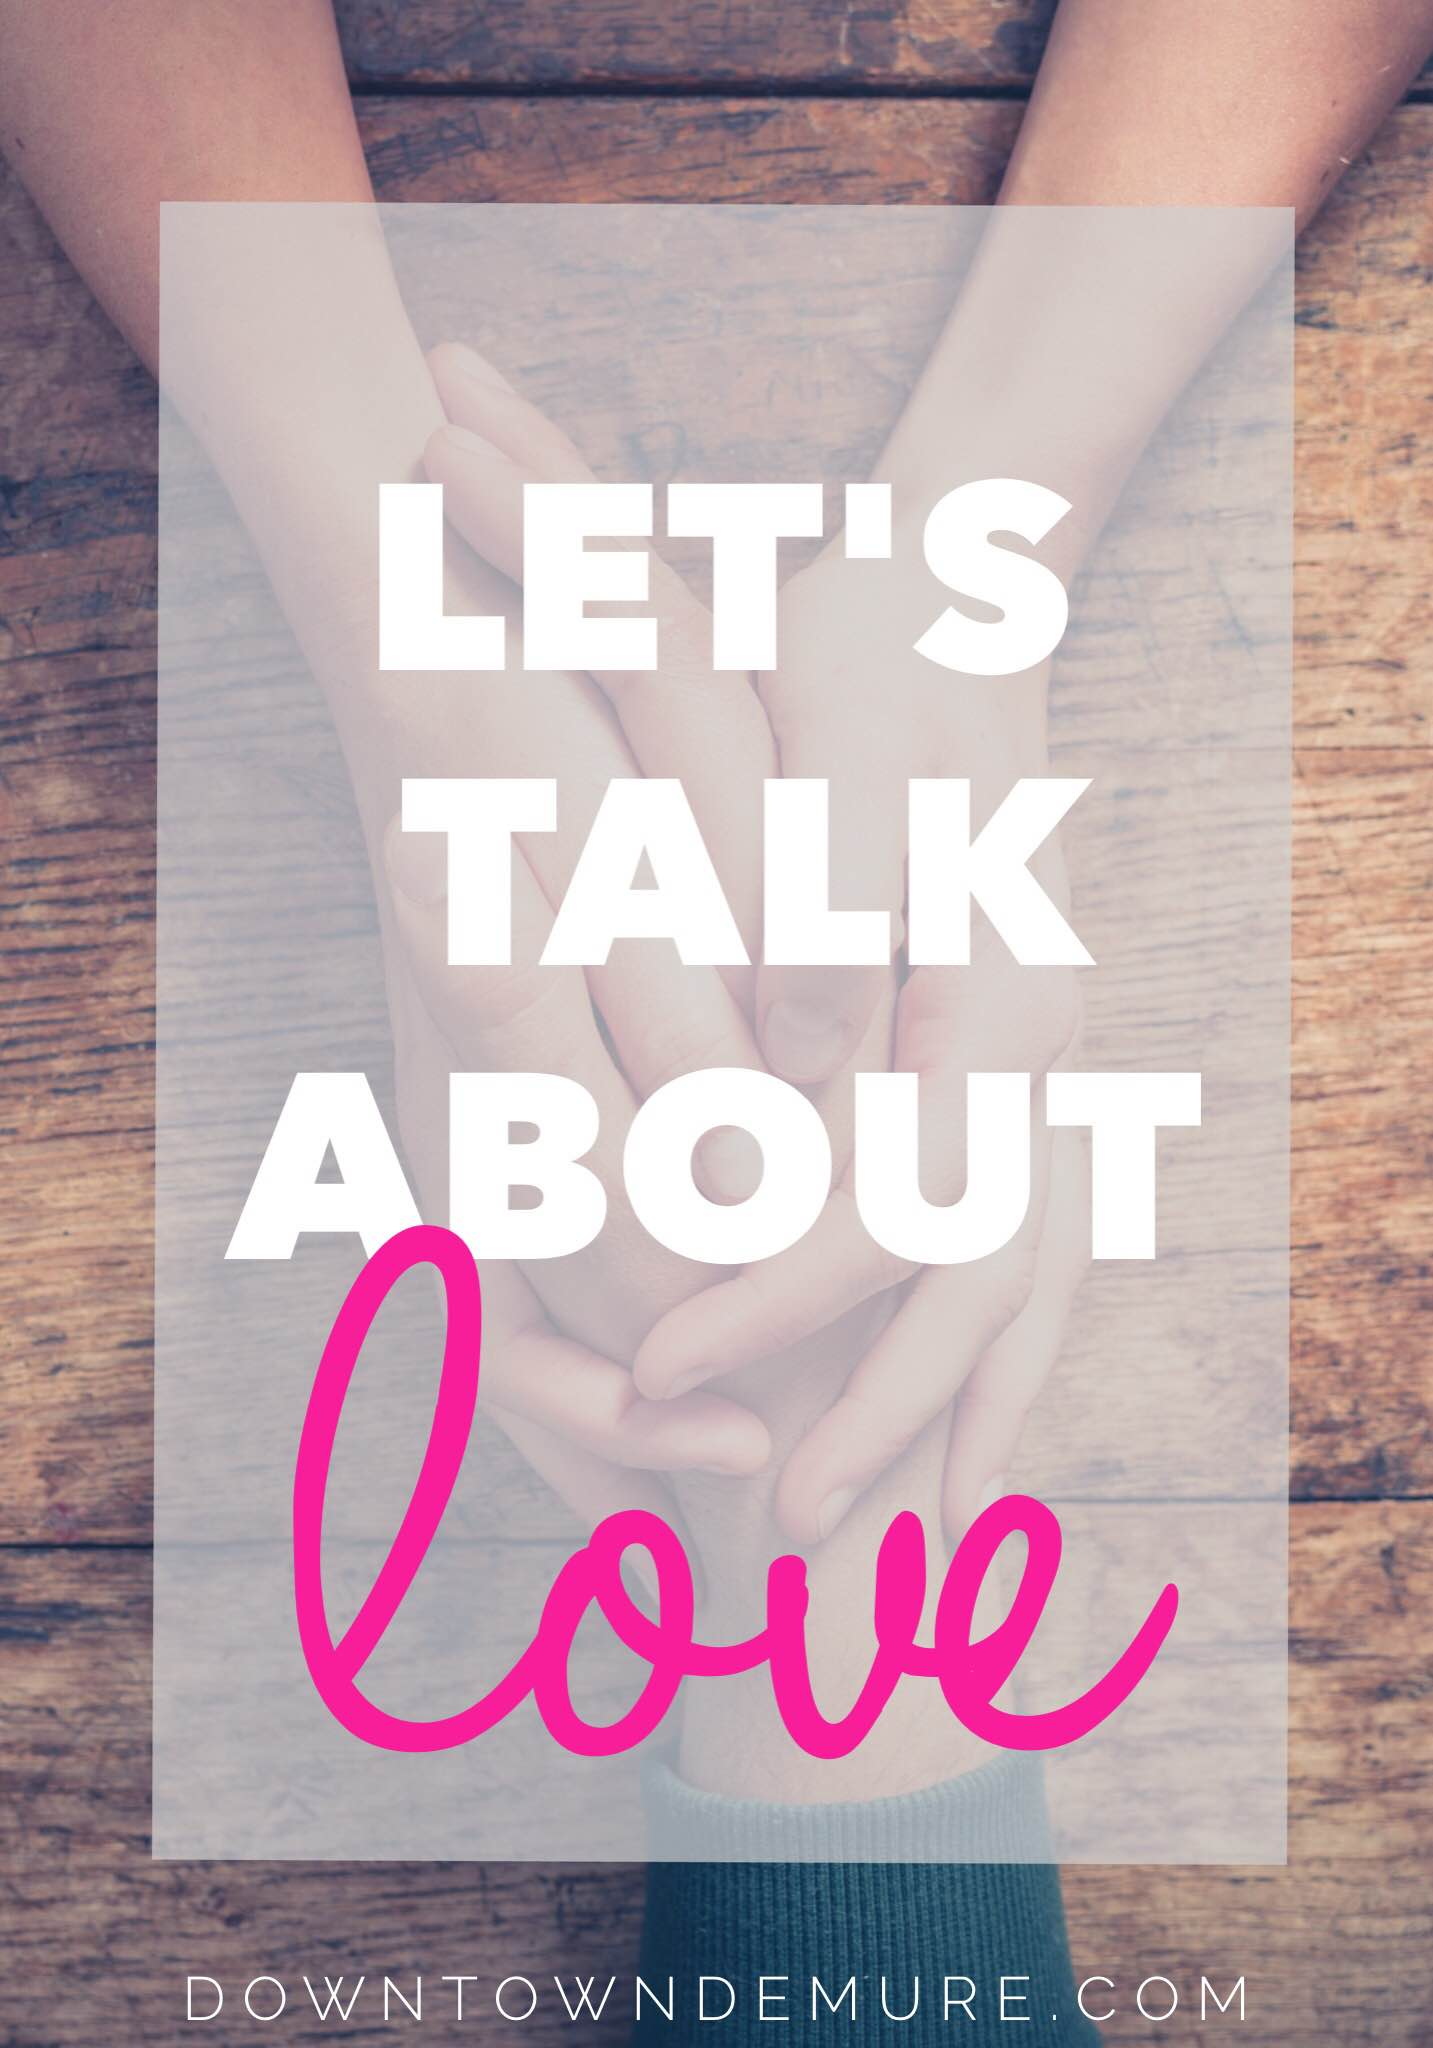 Let's Talk About Love.